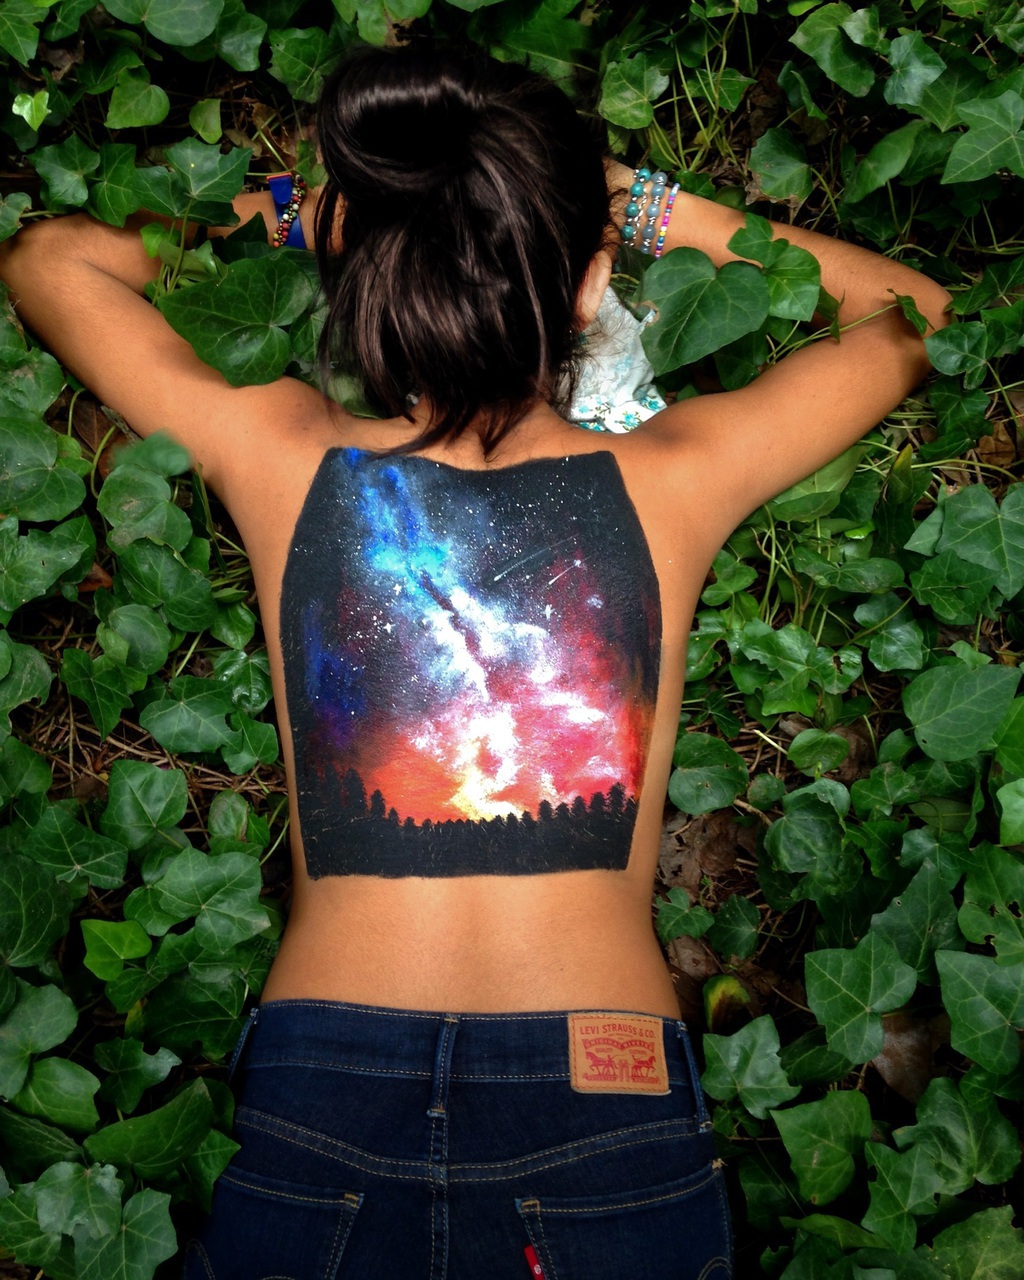 bodypainting, space, and bodypaint image